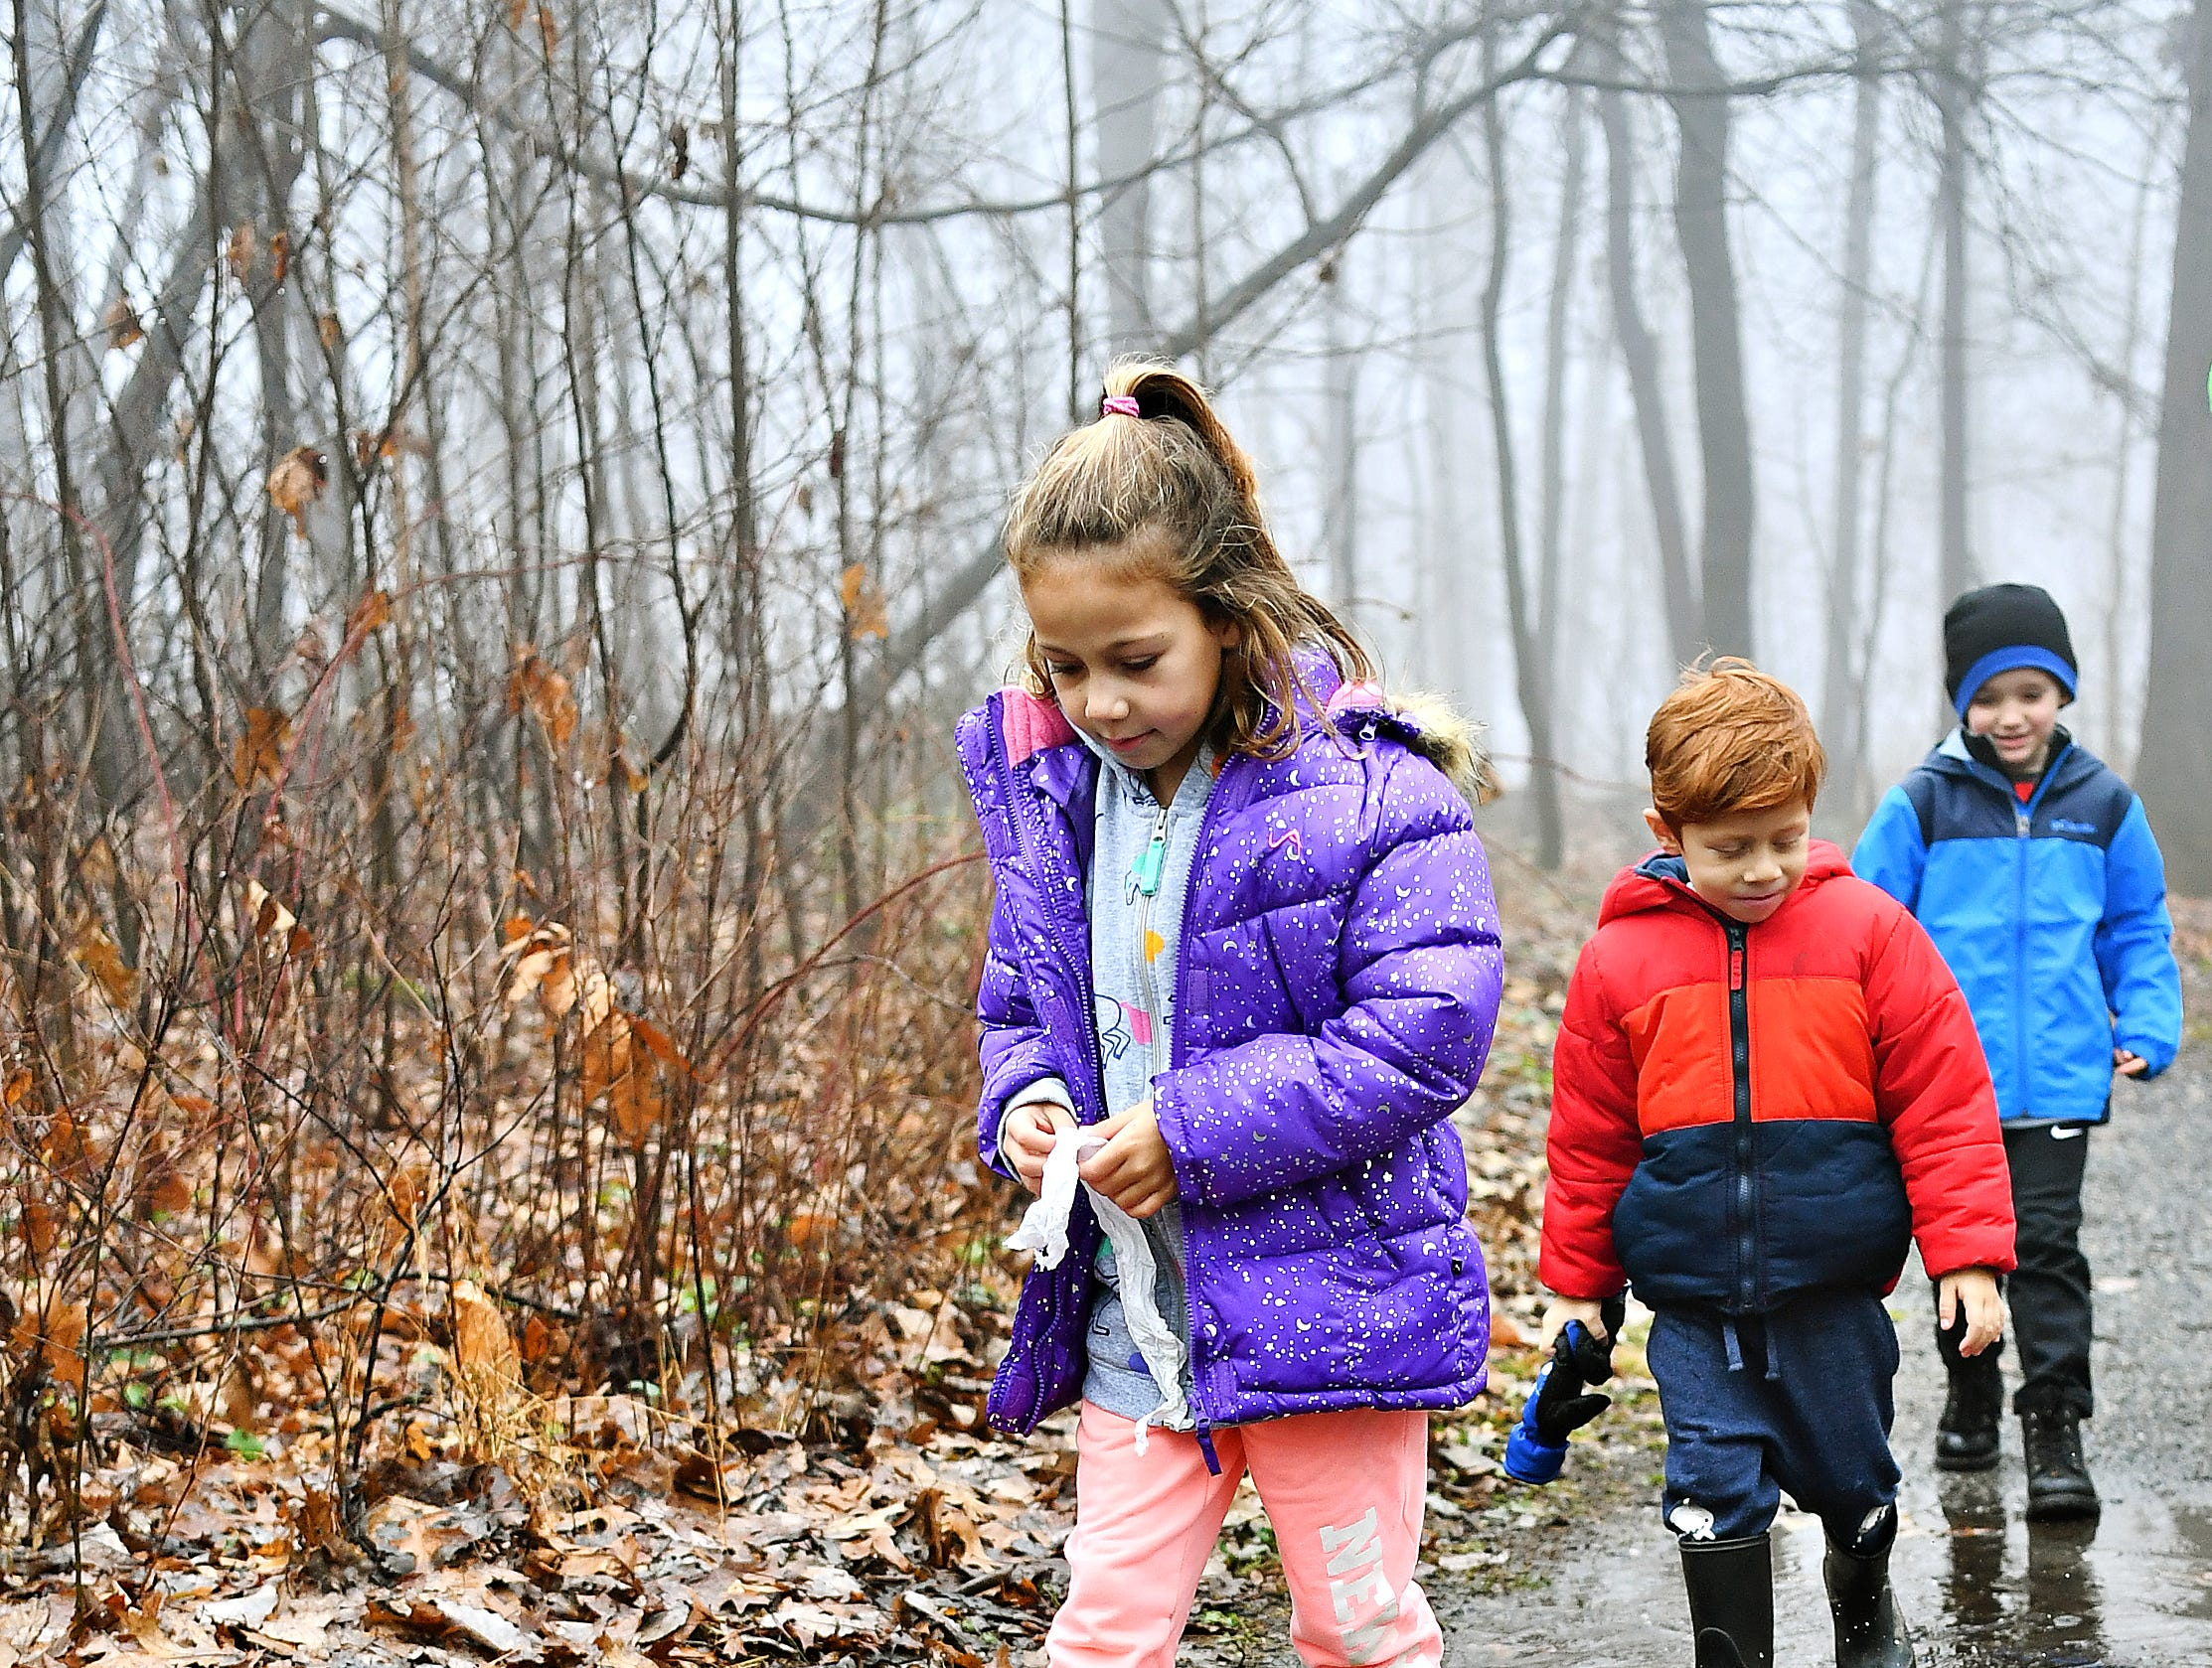 From front, Matilda Hernandez, 7, and her brother Tiago Hernandez, 4, both of Yucatan, Mexico, and Mason Zercher, 6, of East Manchester Township, walk into a puddle on the trail during a Marshmallow Hike led by York County Parks Naturalist Kelsey Frey at Rocky Ridge Park in Springettsbury Township, Friday, Dec. 28, 2018. Dawn J. Sagert photo